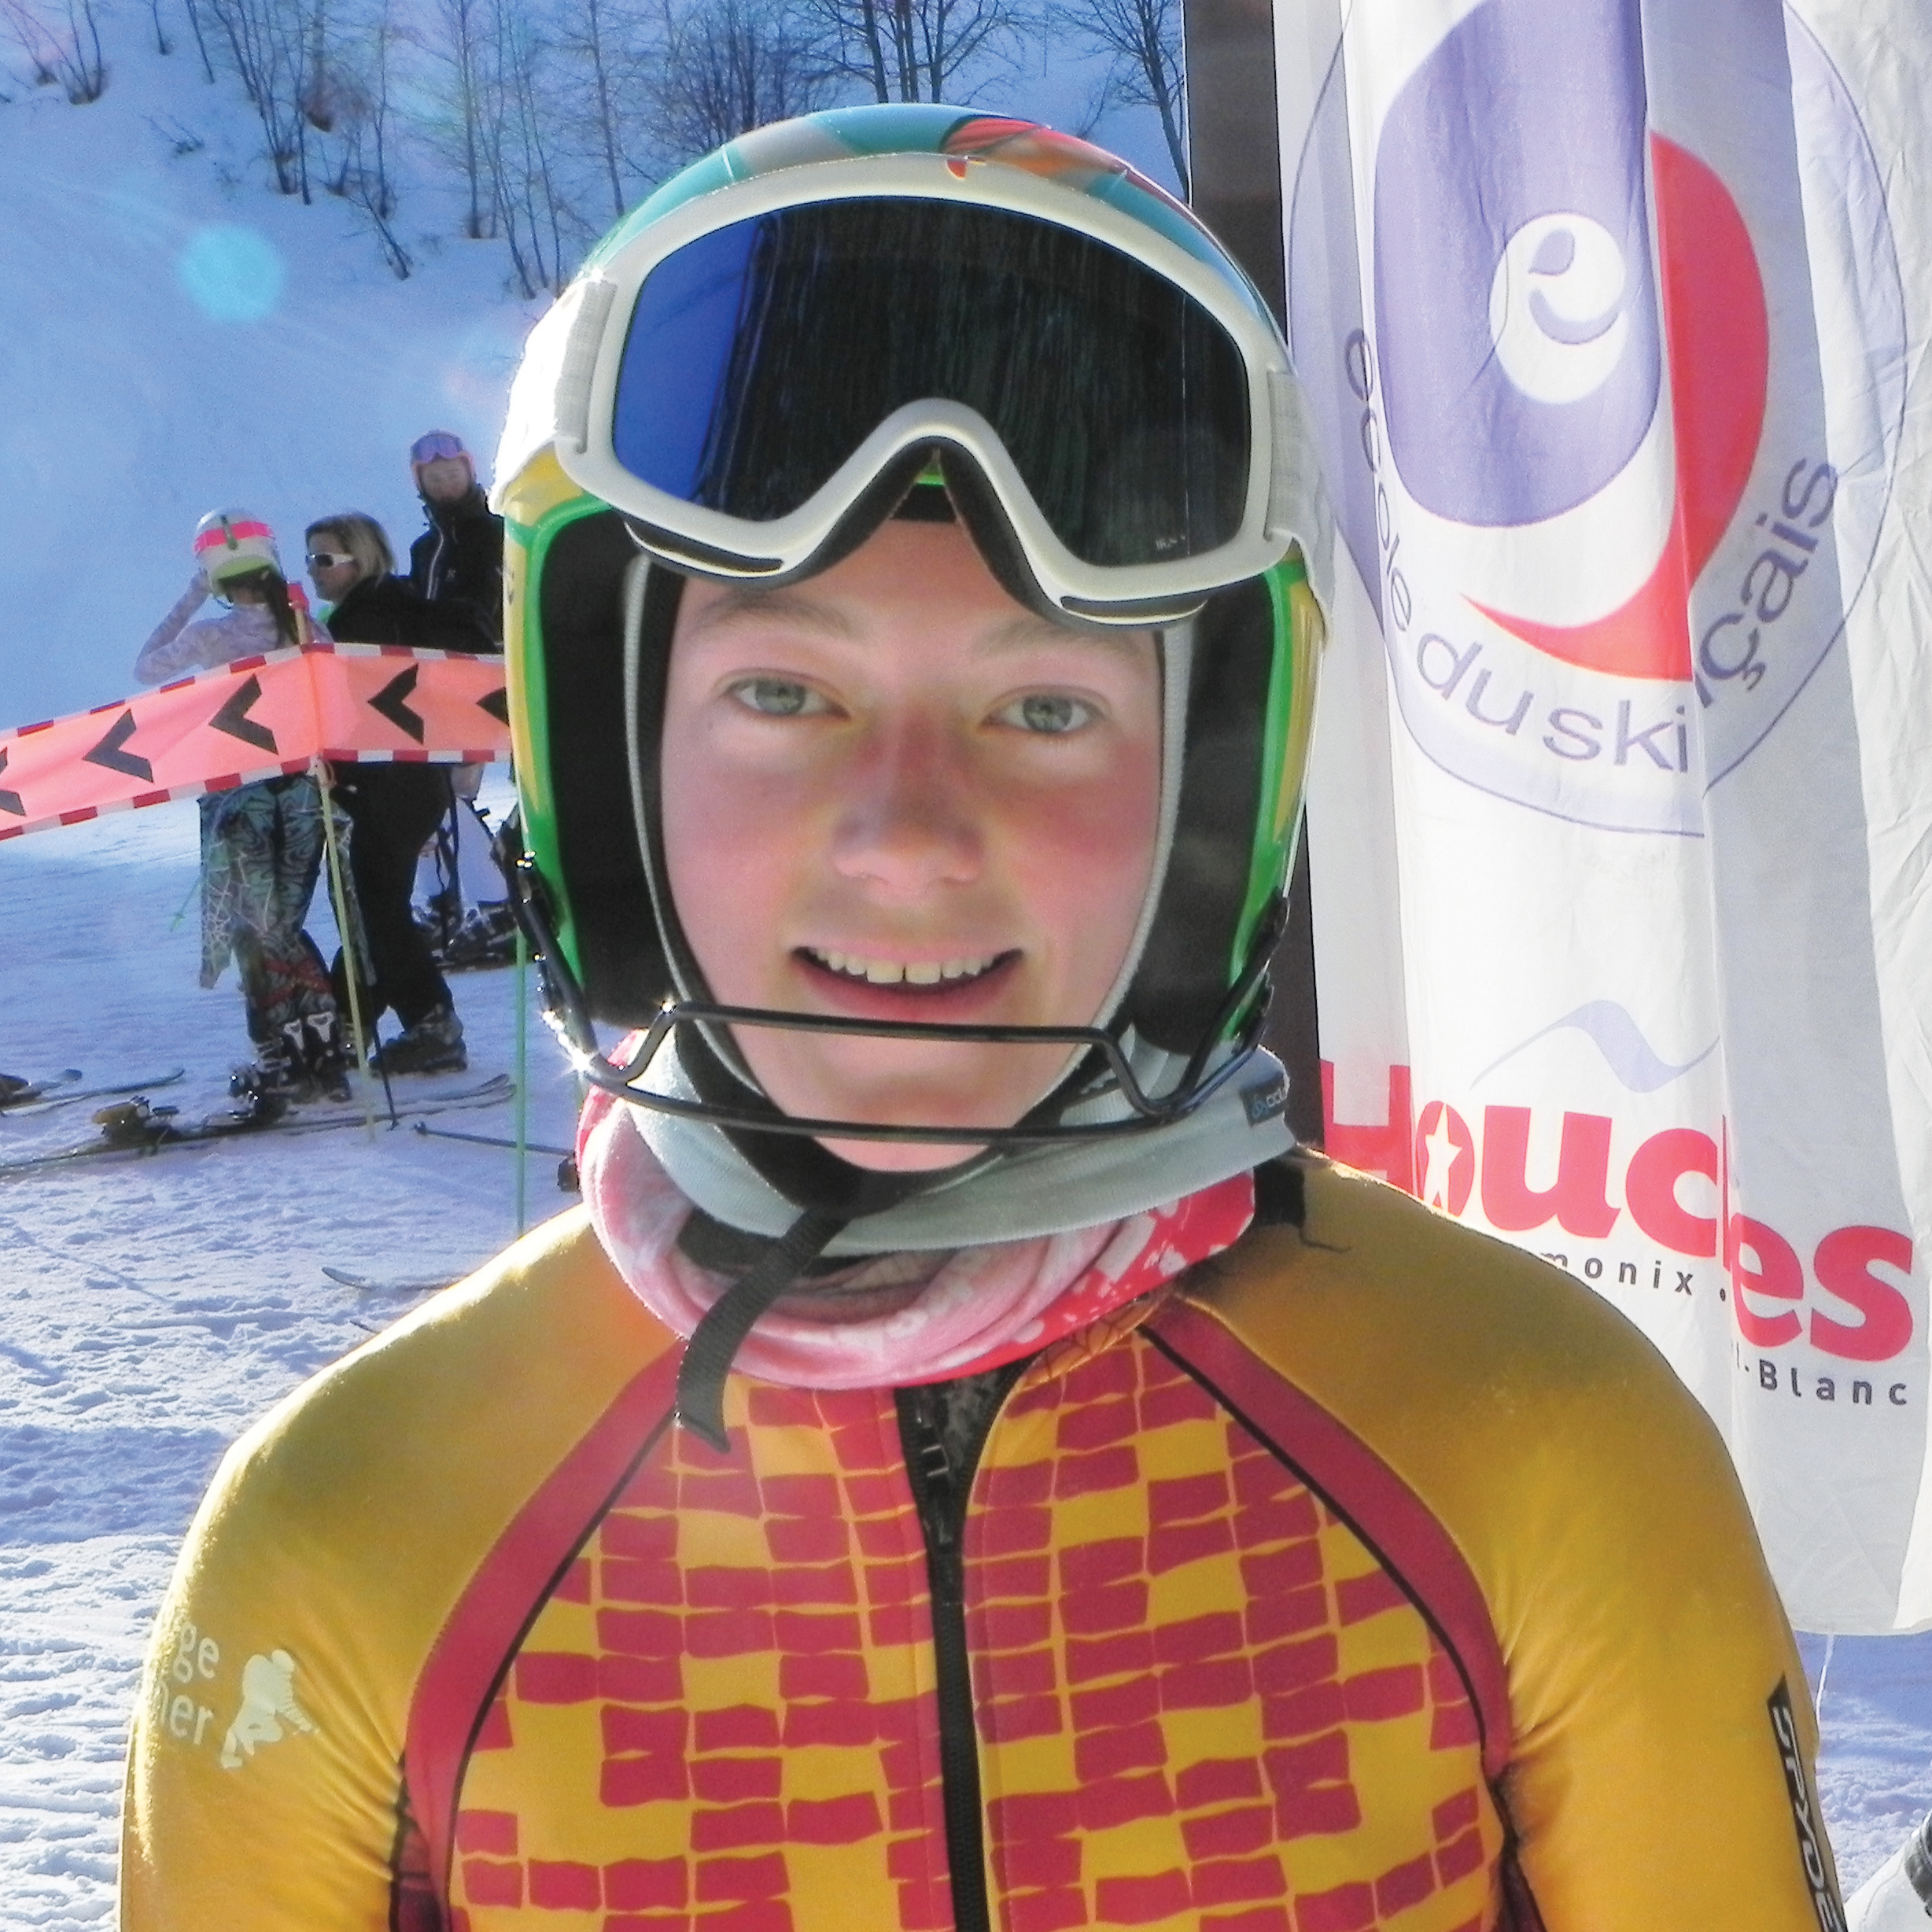 Image for article Our sponsored skier FRANCESCA LEE is 'race-ready'